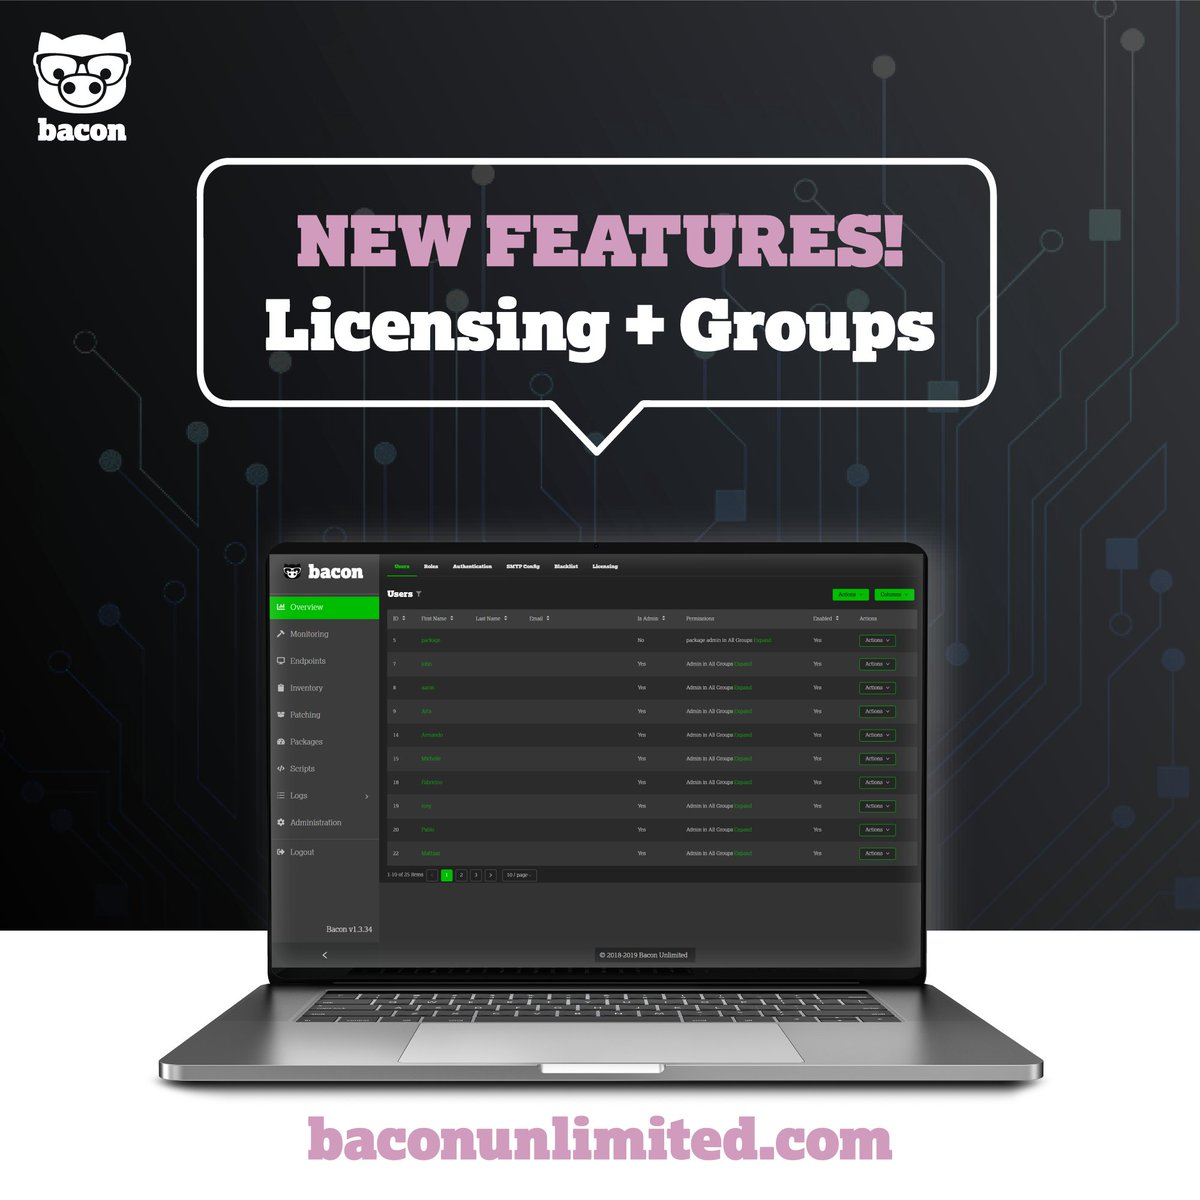 Announcing Bacon v1.4! NEW FEATURES: Licensing and Groups.  FREE #webinar on June 5 @ 2pm. Sign up today at https://baconunlimited.com  #baconunlimited #getbacon #bacon #itsupport #itservices #itsoftware #tech #newtech #technology #software #windows #mac #linuxpic.twitter.com/iFEelCdeJj